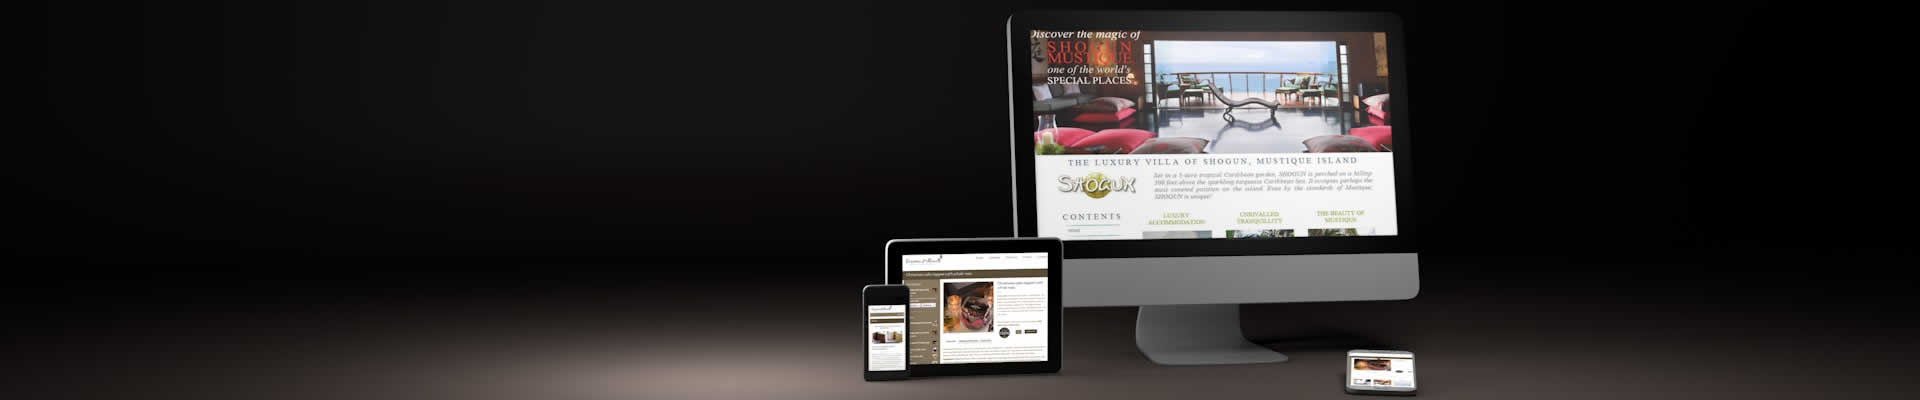 Welcome to SiliconStudio, the experienced online agency for effective web design.